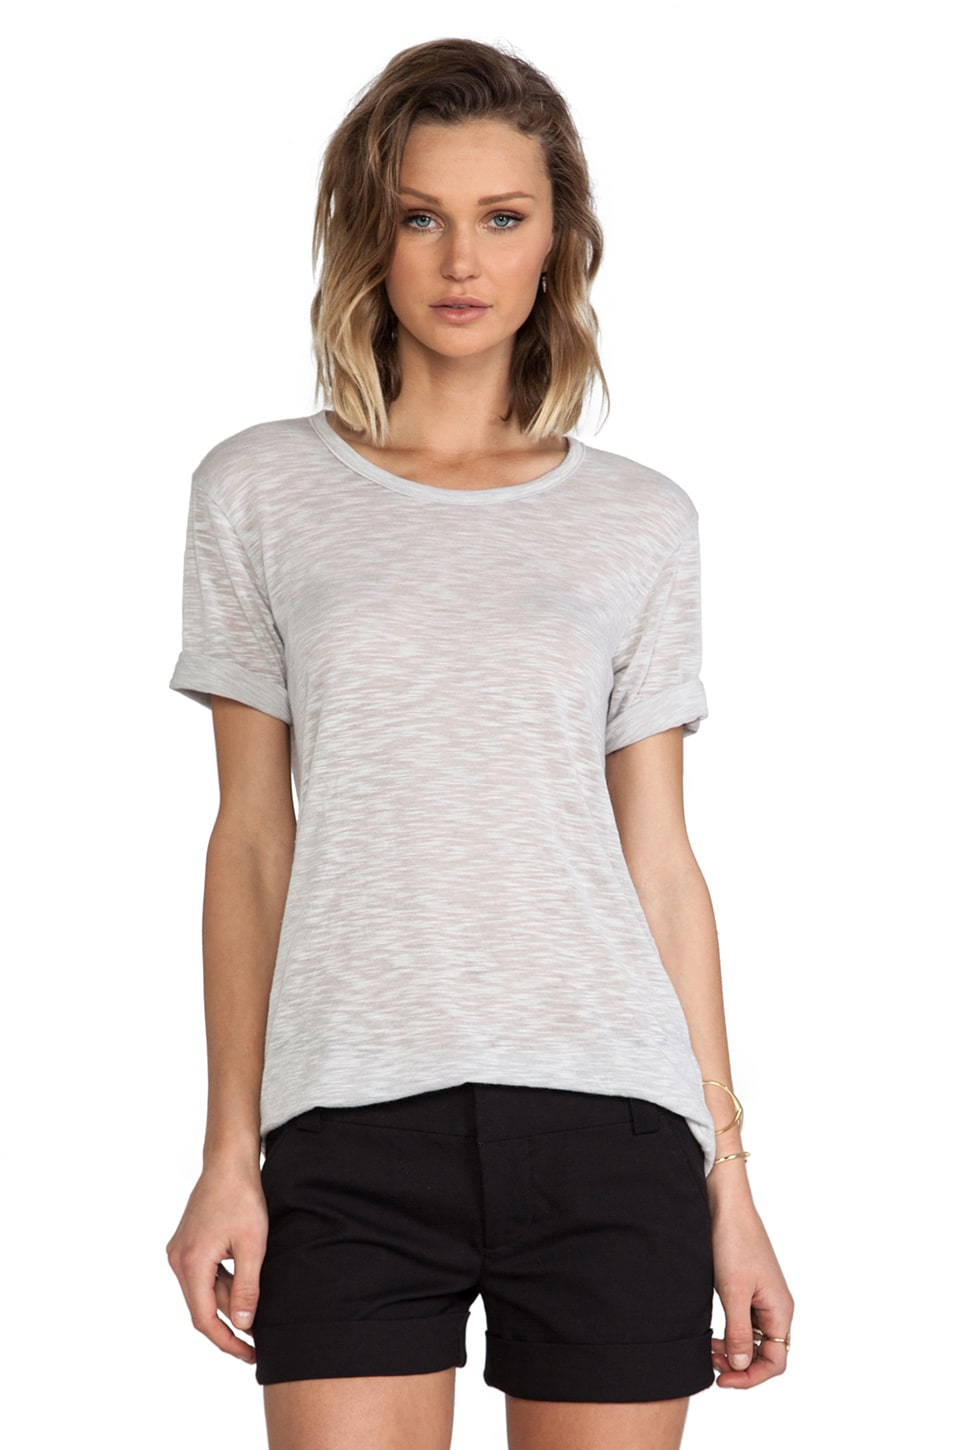 MONROW Poly Rayon Fashion Tee in Linen